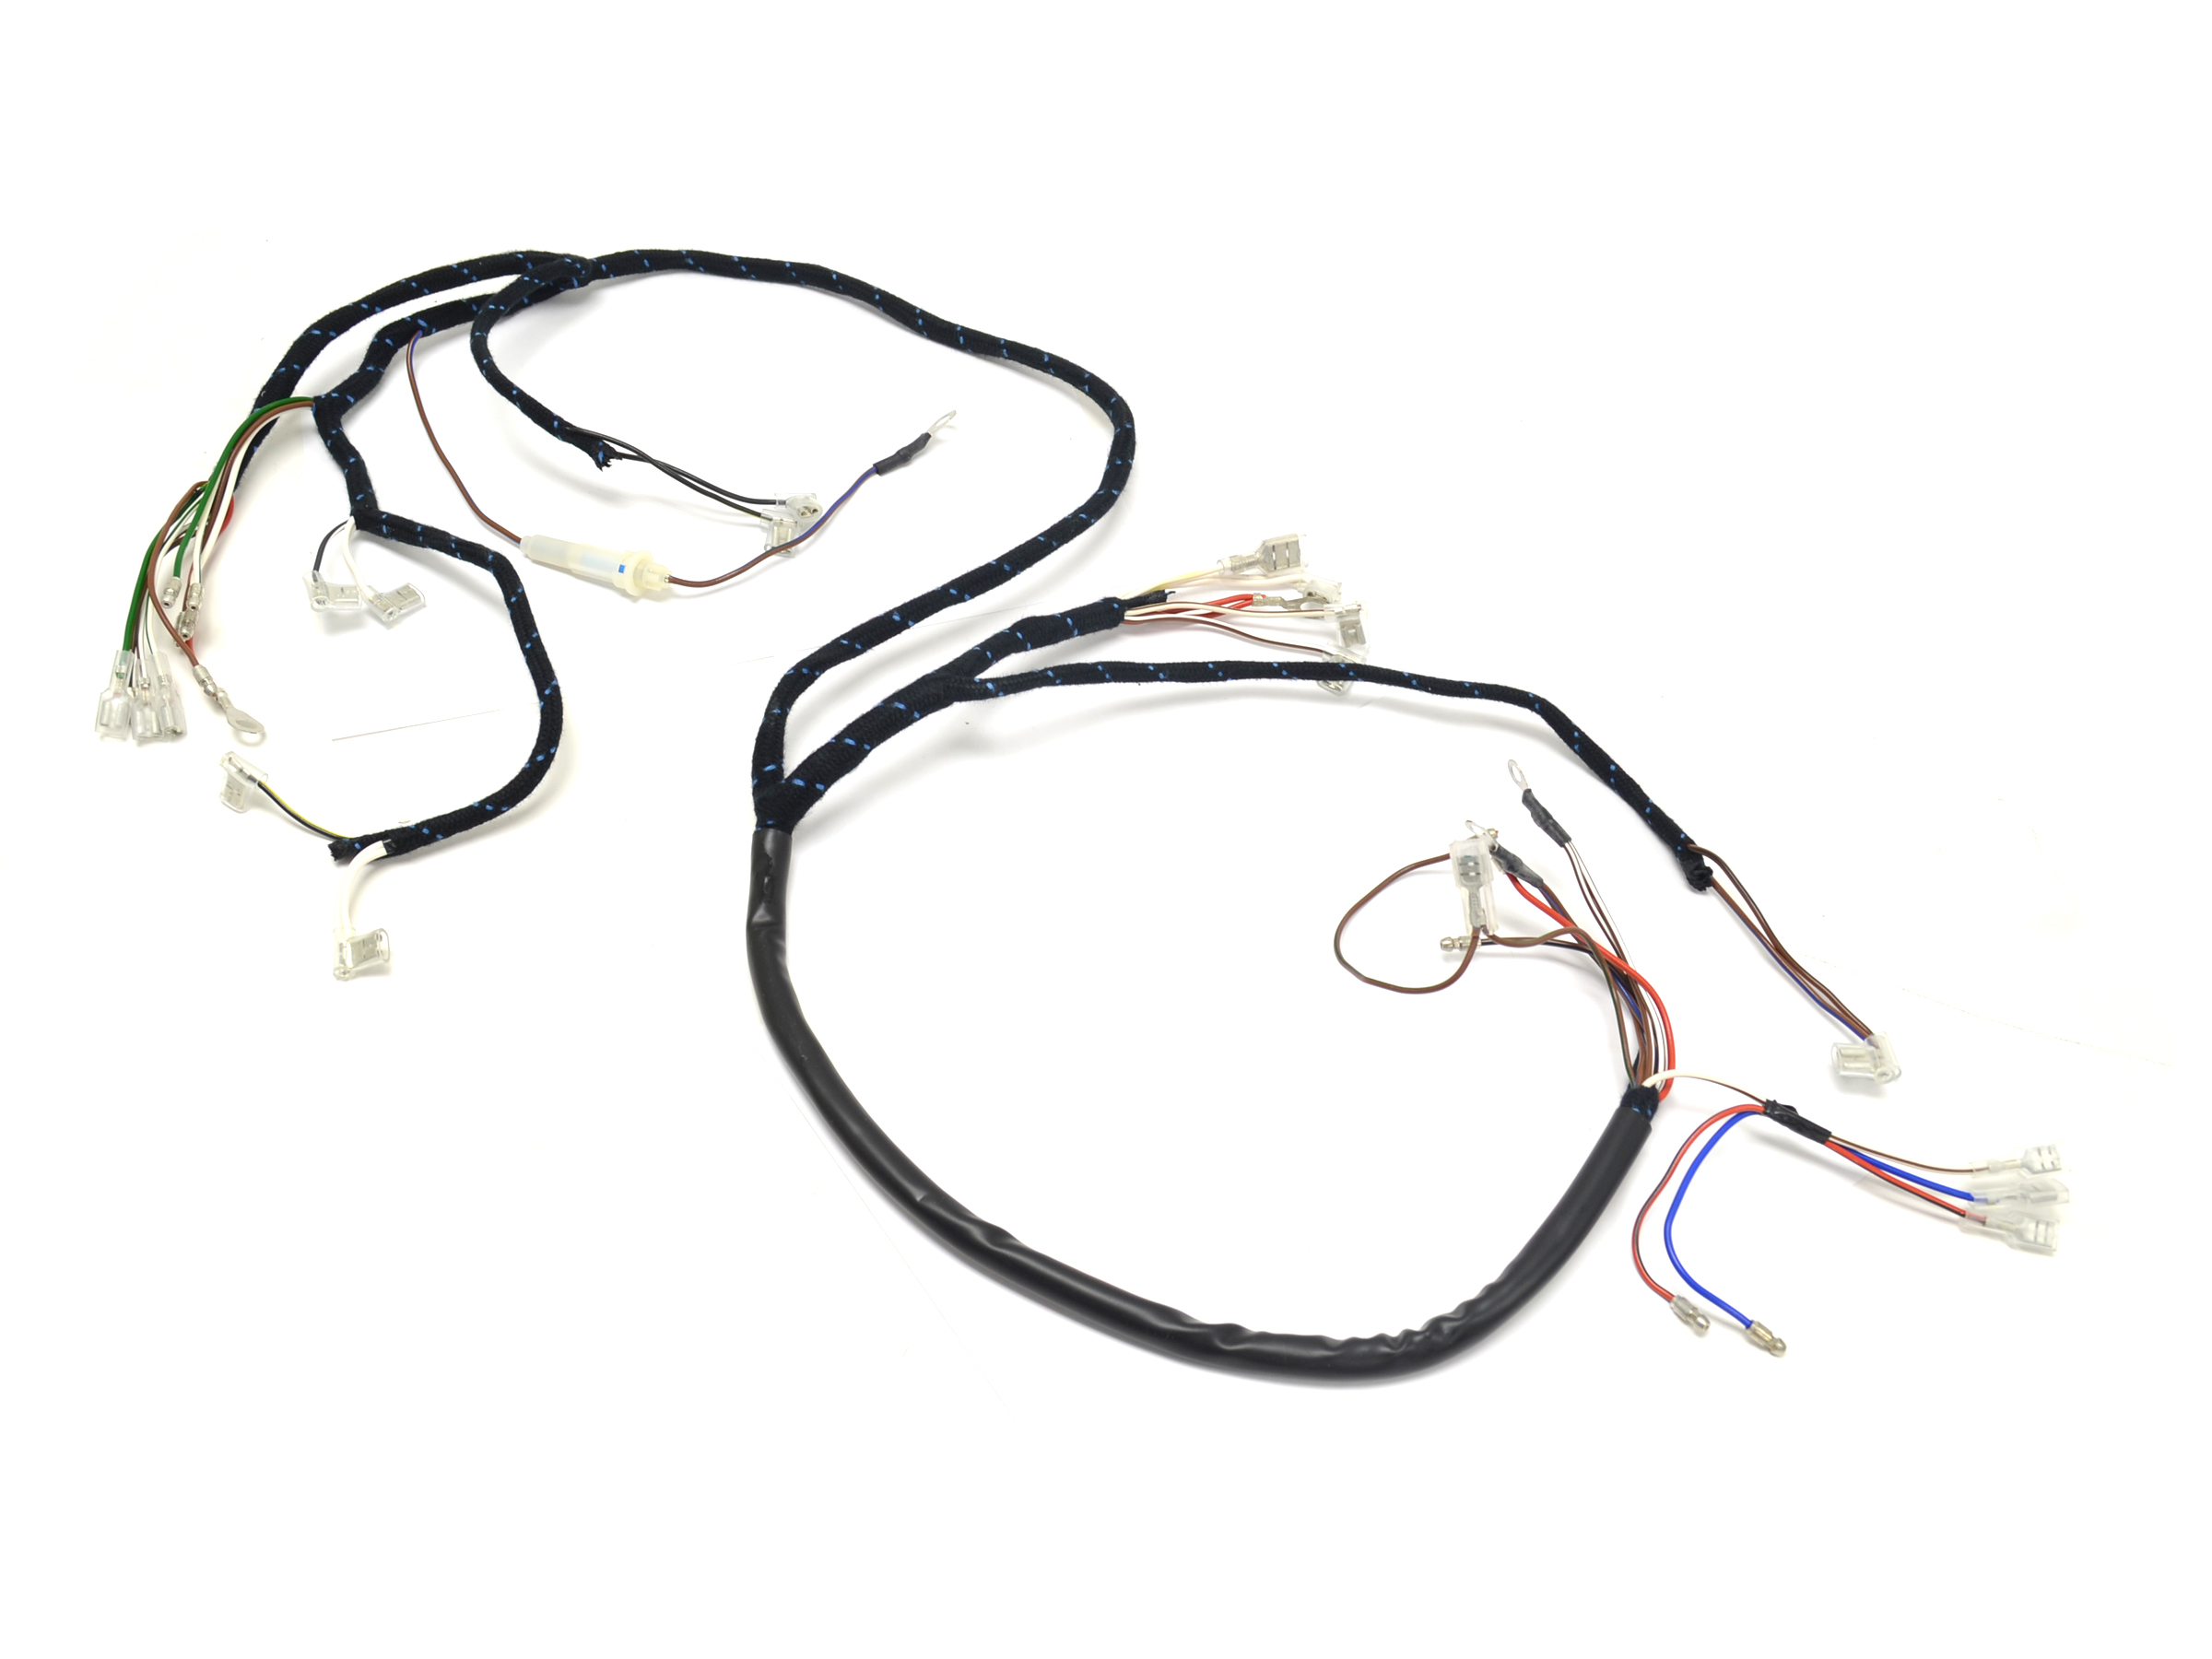 Bsa 69 A50 A65 English Made 12 Volt Wiring Harness H013